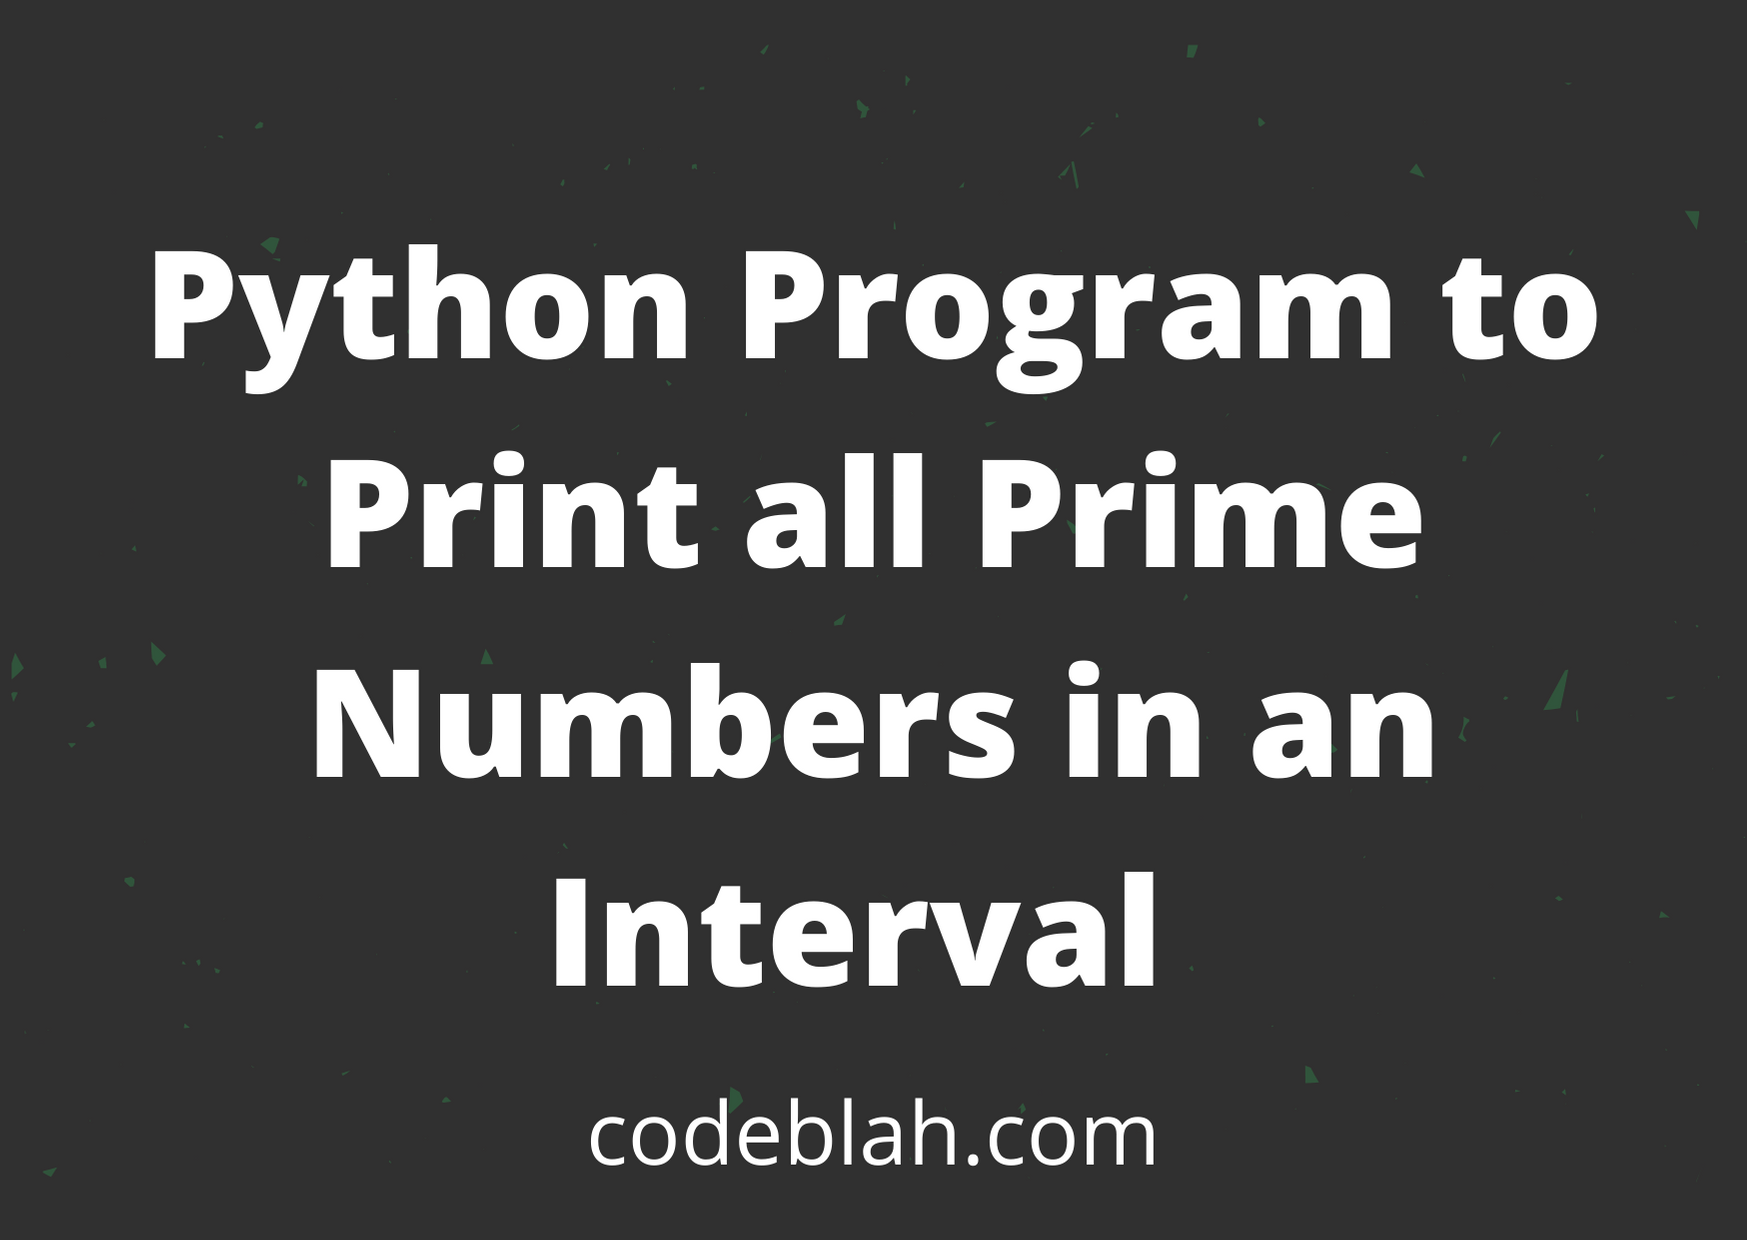 Python Program to Print all Prime Numbers in an Interval